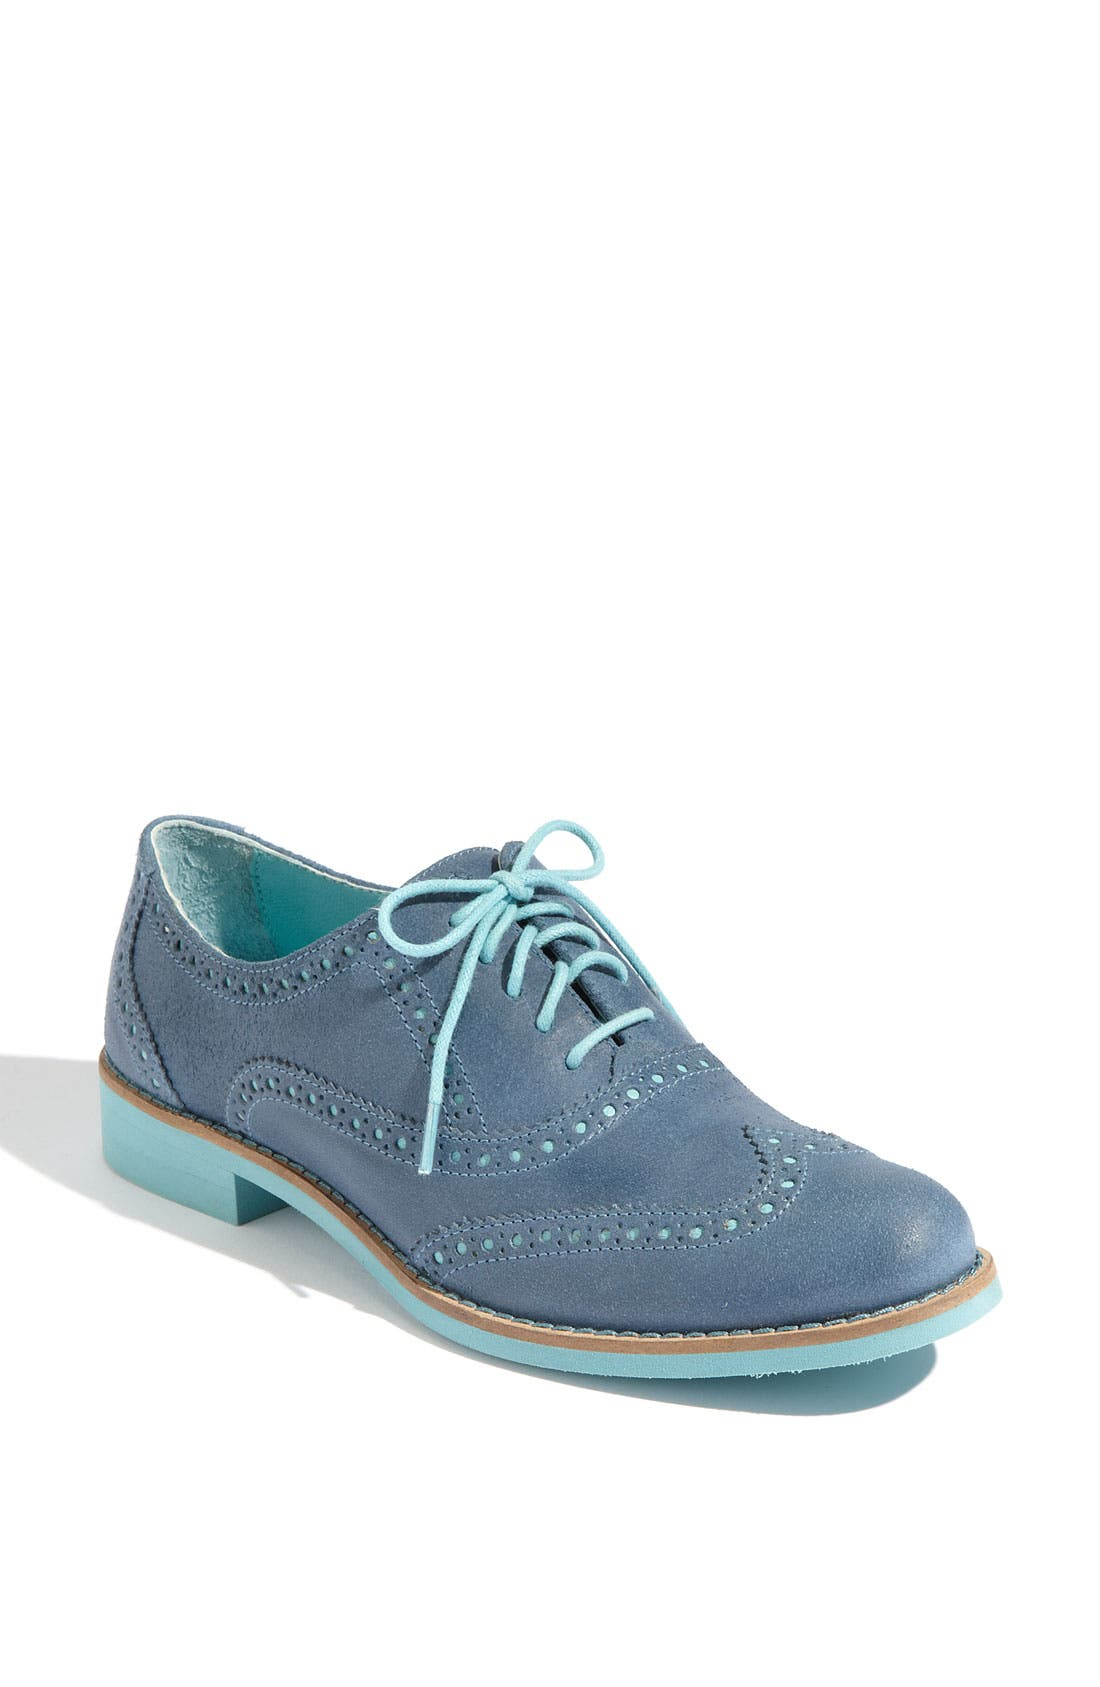 Main Image - Cole Haan 'Alisa' Oxford